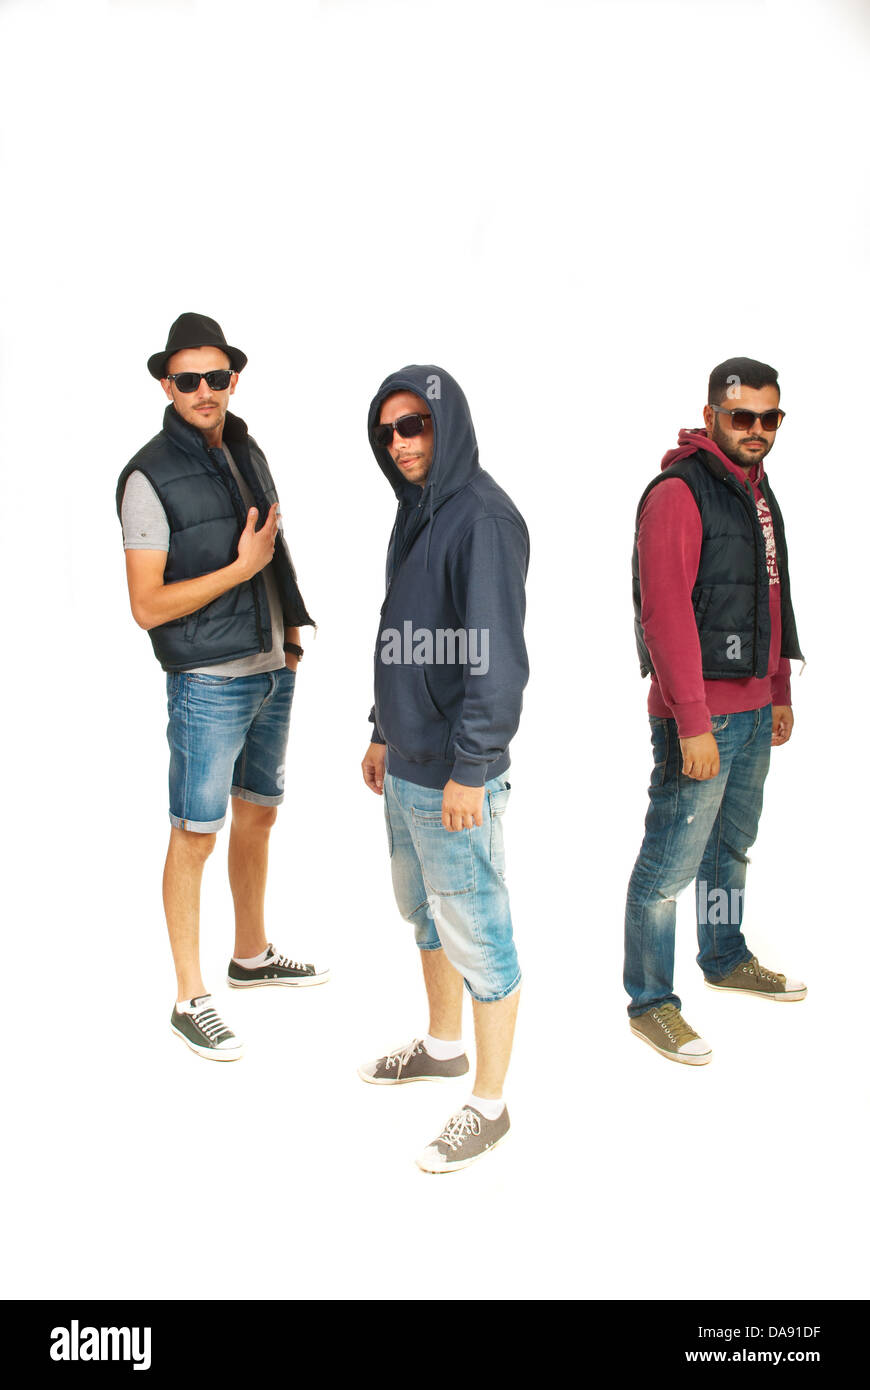 c93b894d7747 Group of three rappers men with sunglasses isolated on white background